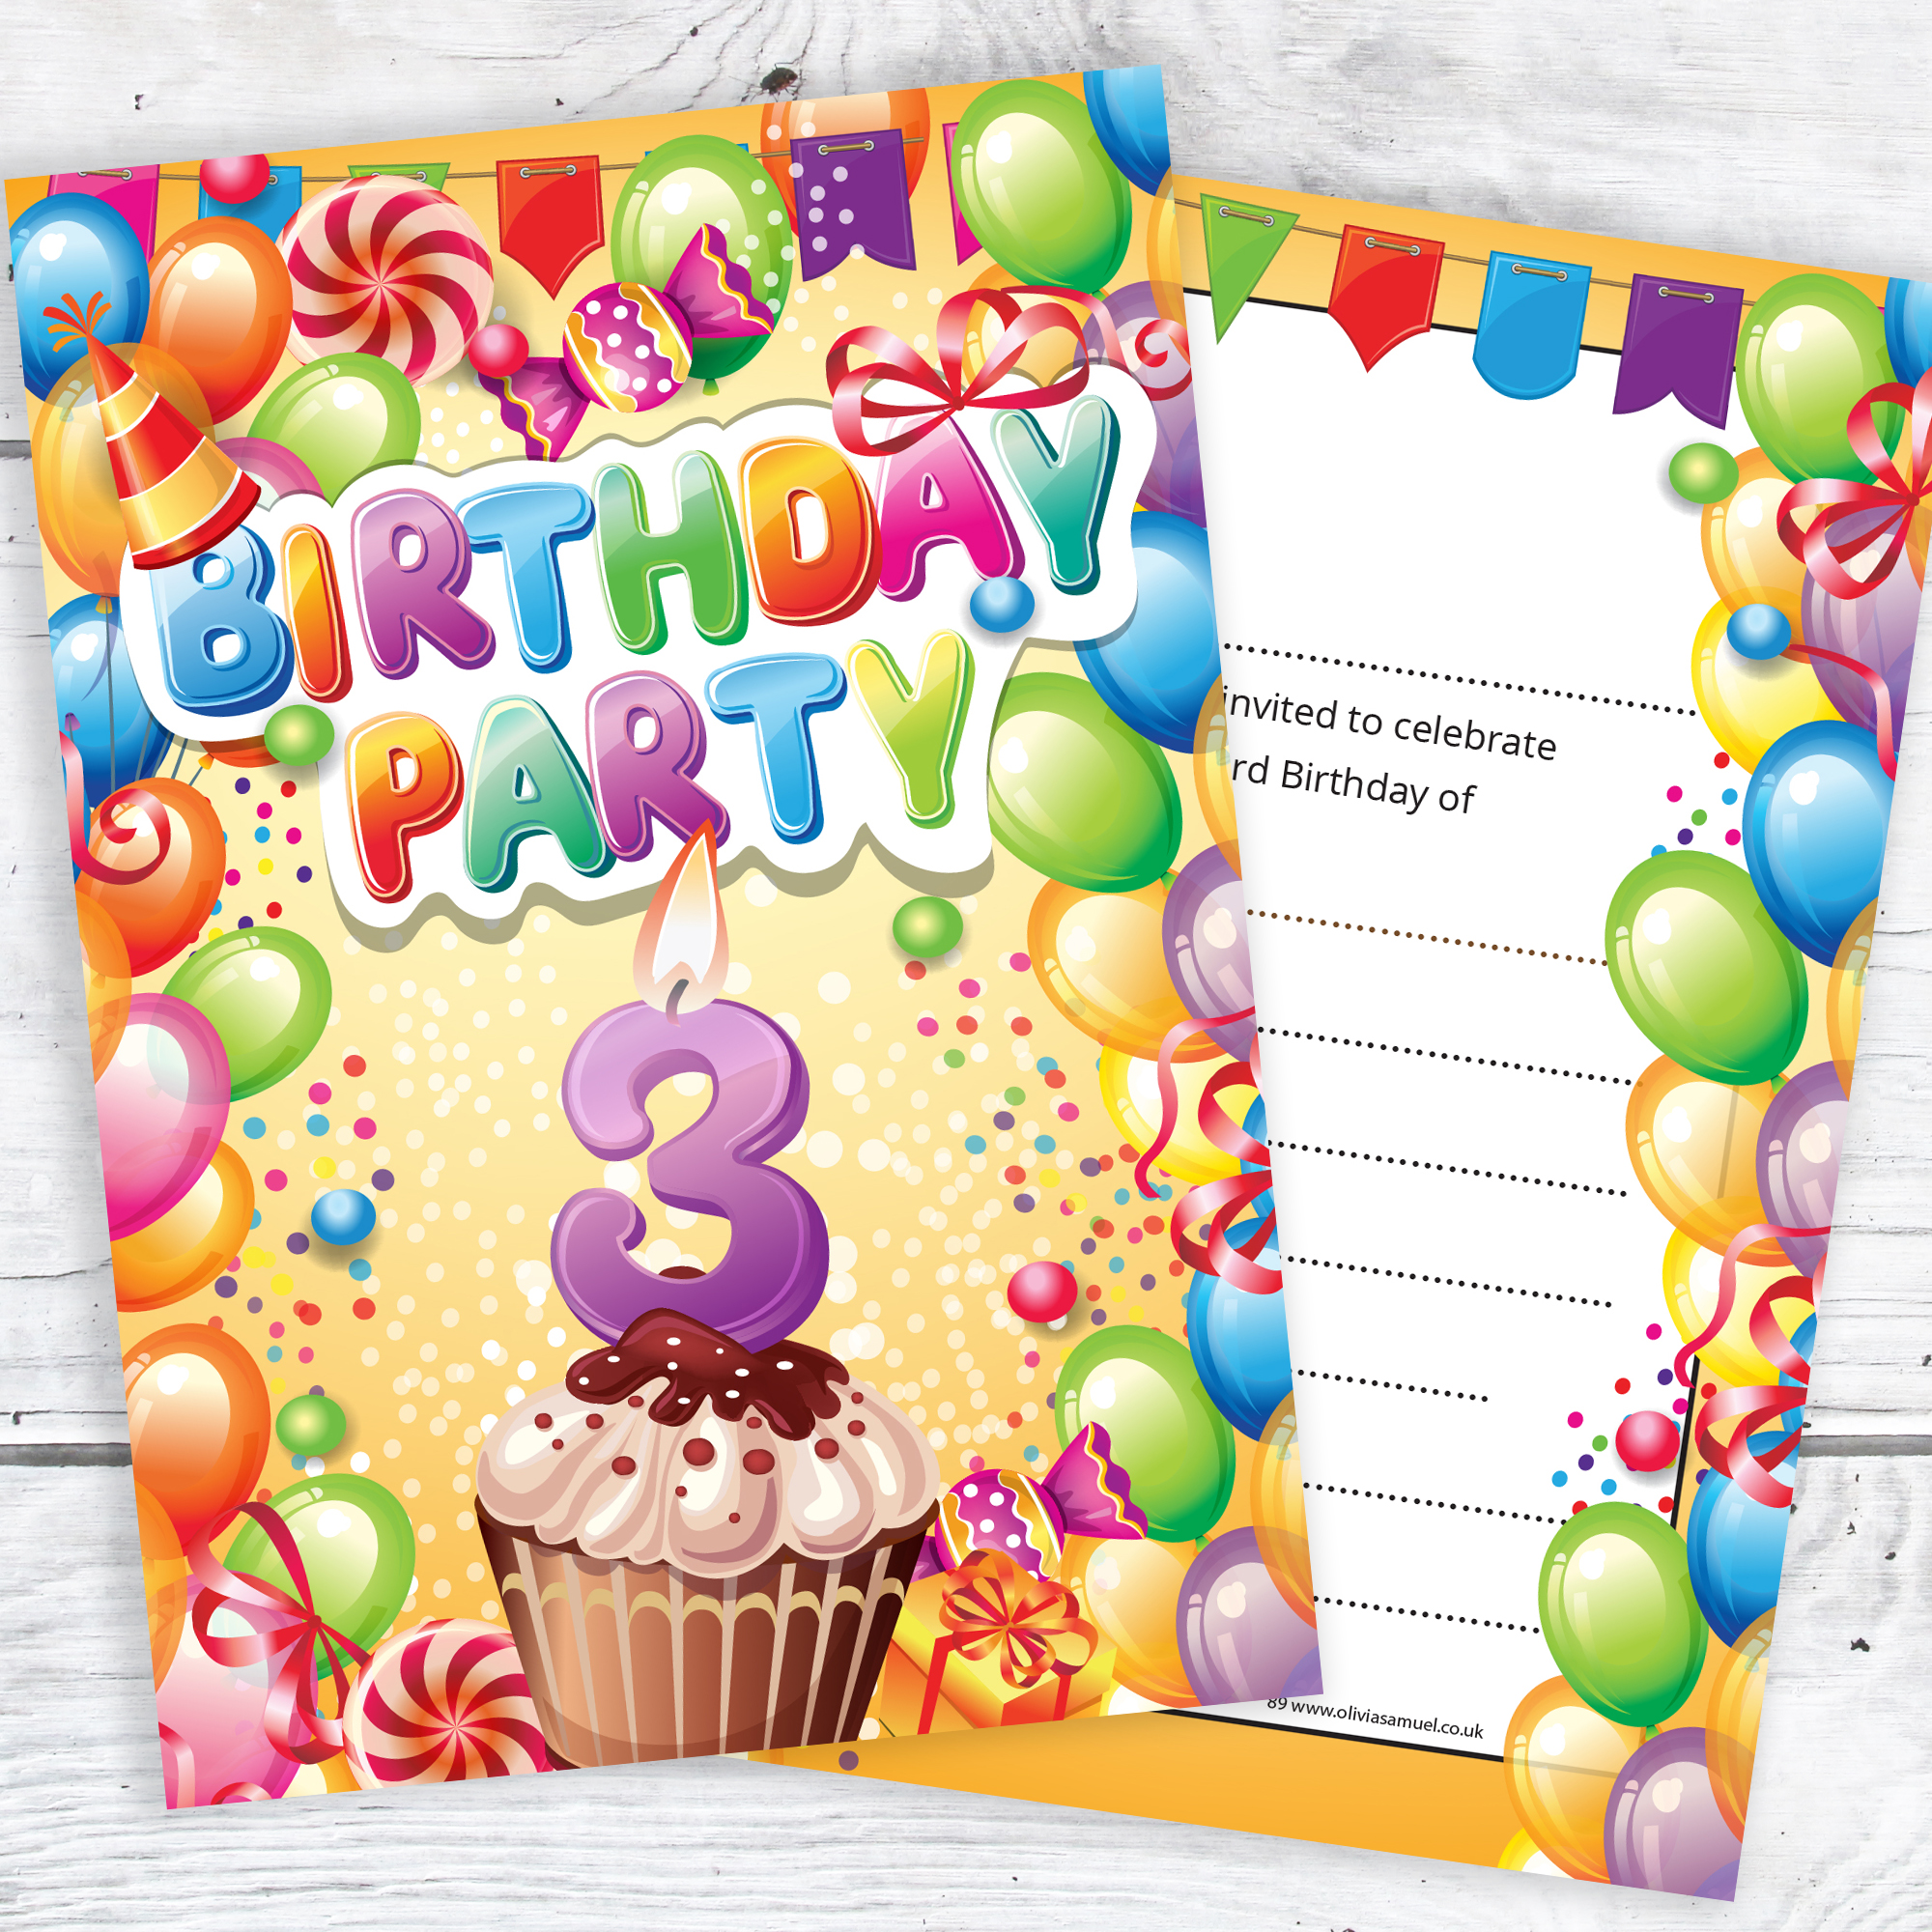 Childrens 3rd Birthday Party Invites Boy Or Girl Bright Fun